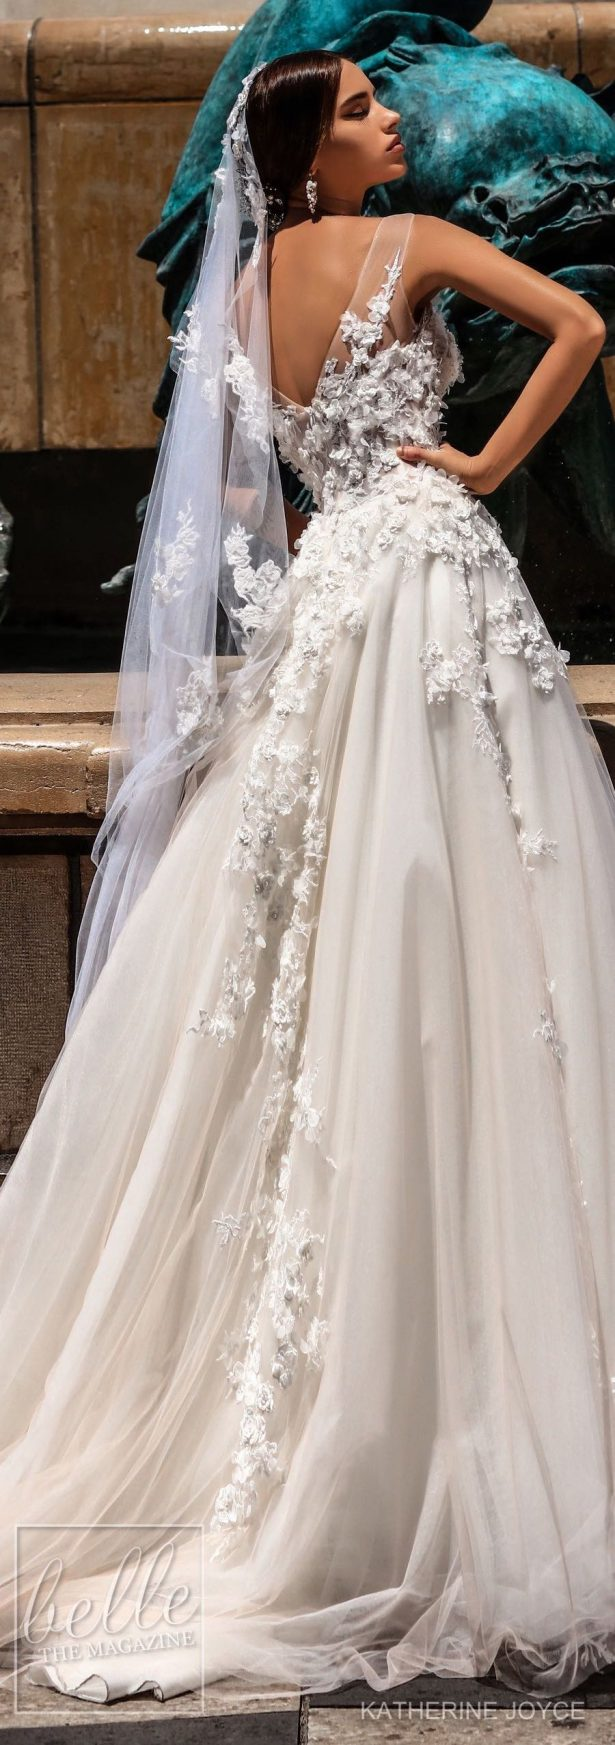 Wedding dresses in ma wedding ideas wedding dresses by katherine joyce bridal ma cheri collection 2018 ombrellifo Image collections